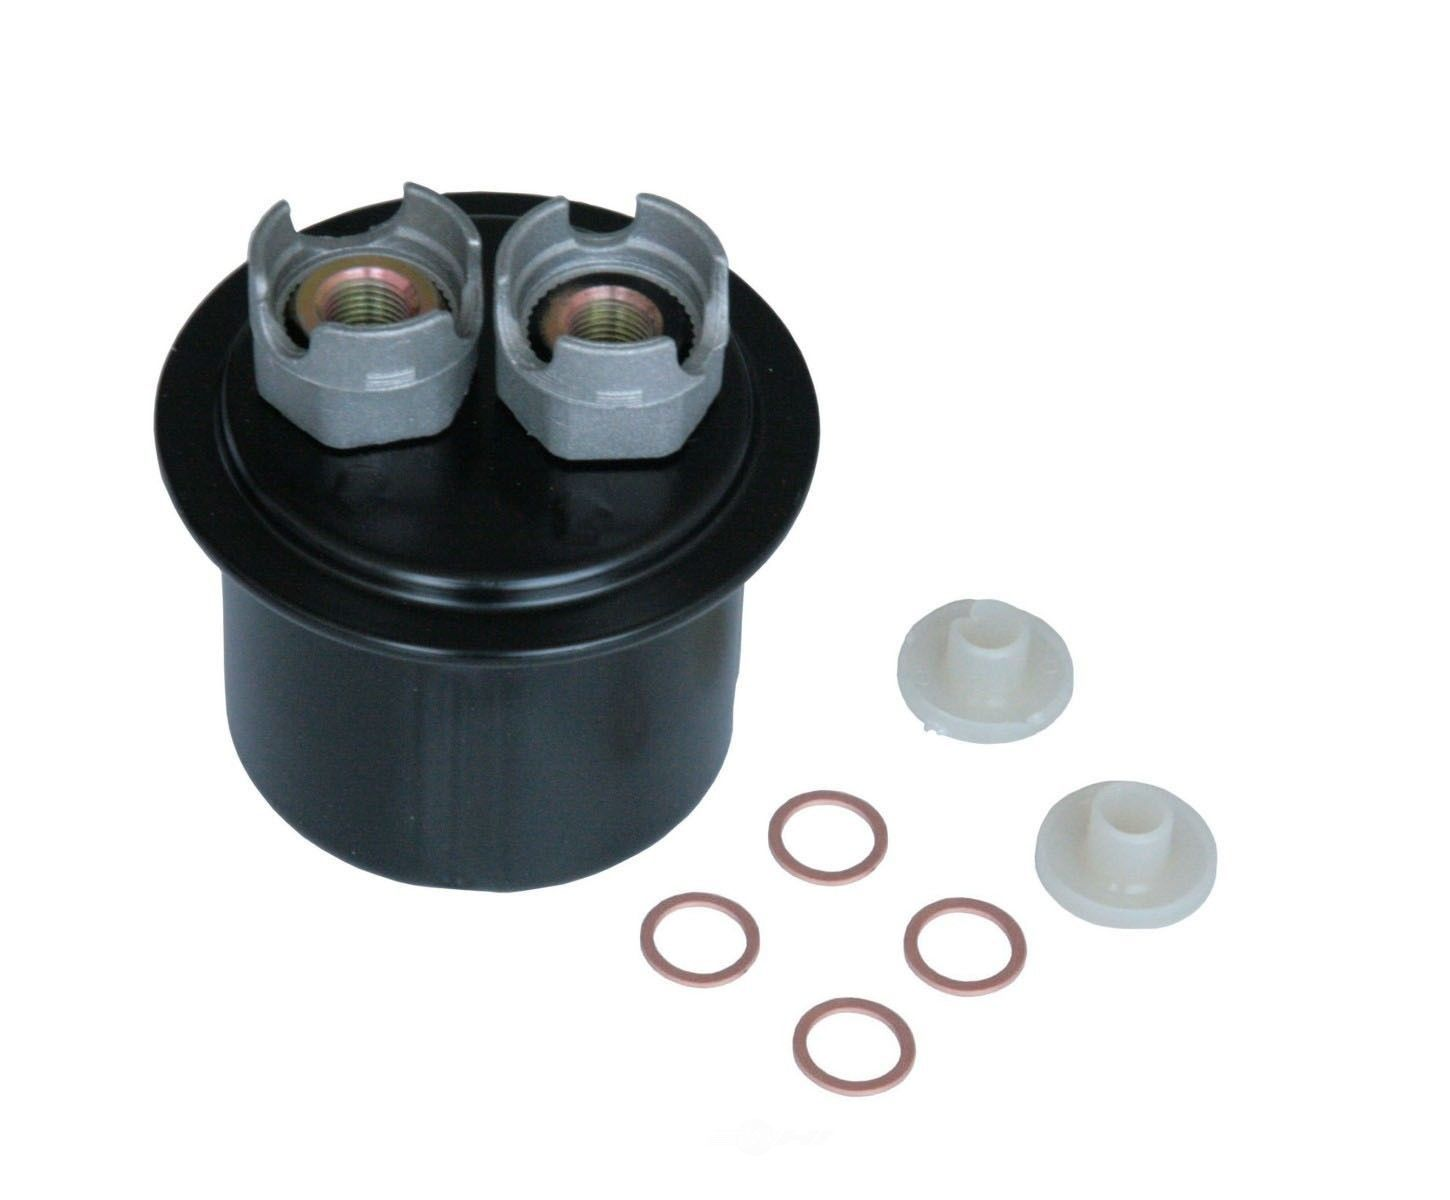 AUTO EXTRA CABIN-FUEL-TRANS FILTERS/US - Universal Type Fuel Filter - AXS 616-33555